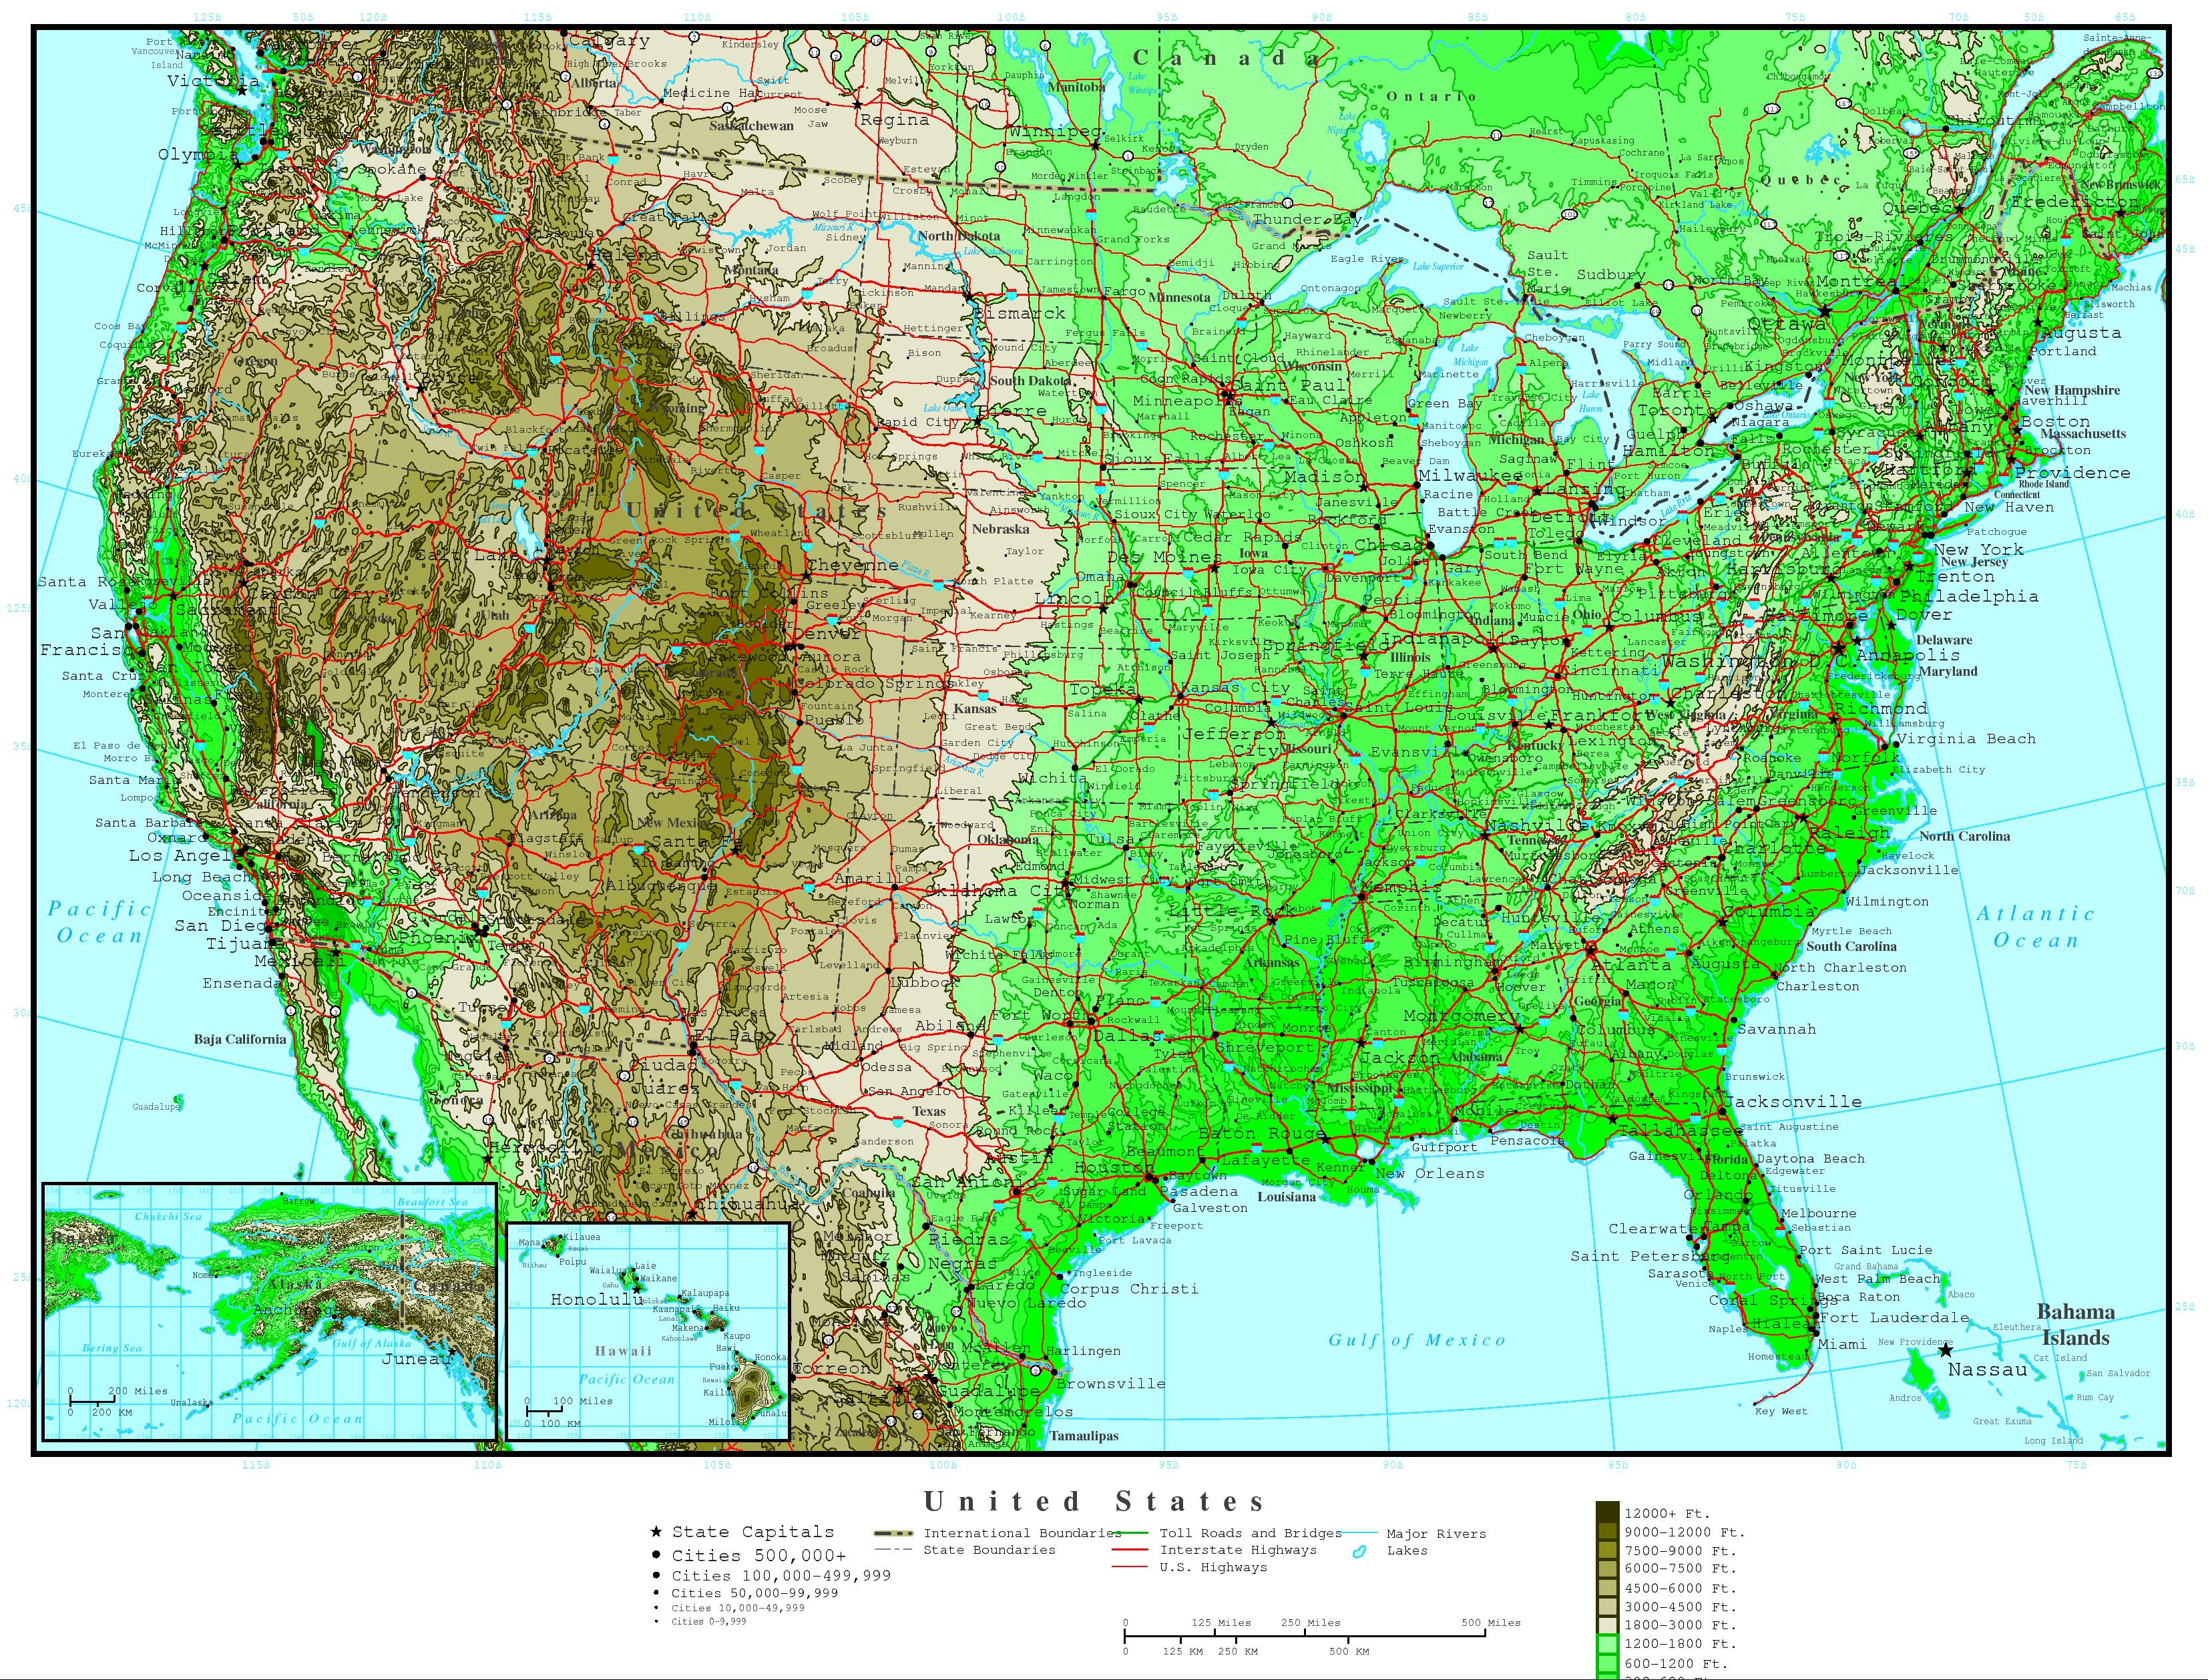 United States Elevation Map - Topographic Map Of Florida Elevation